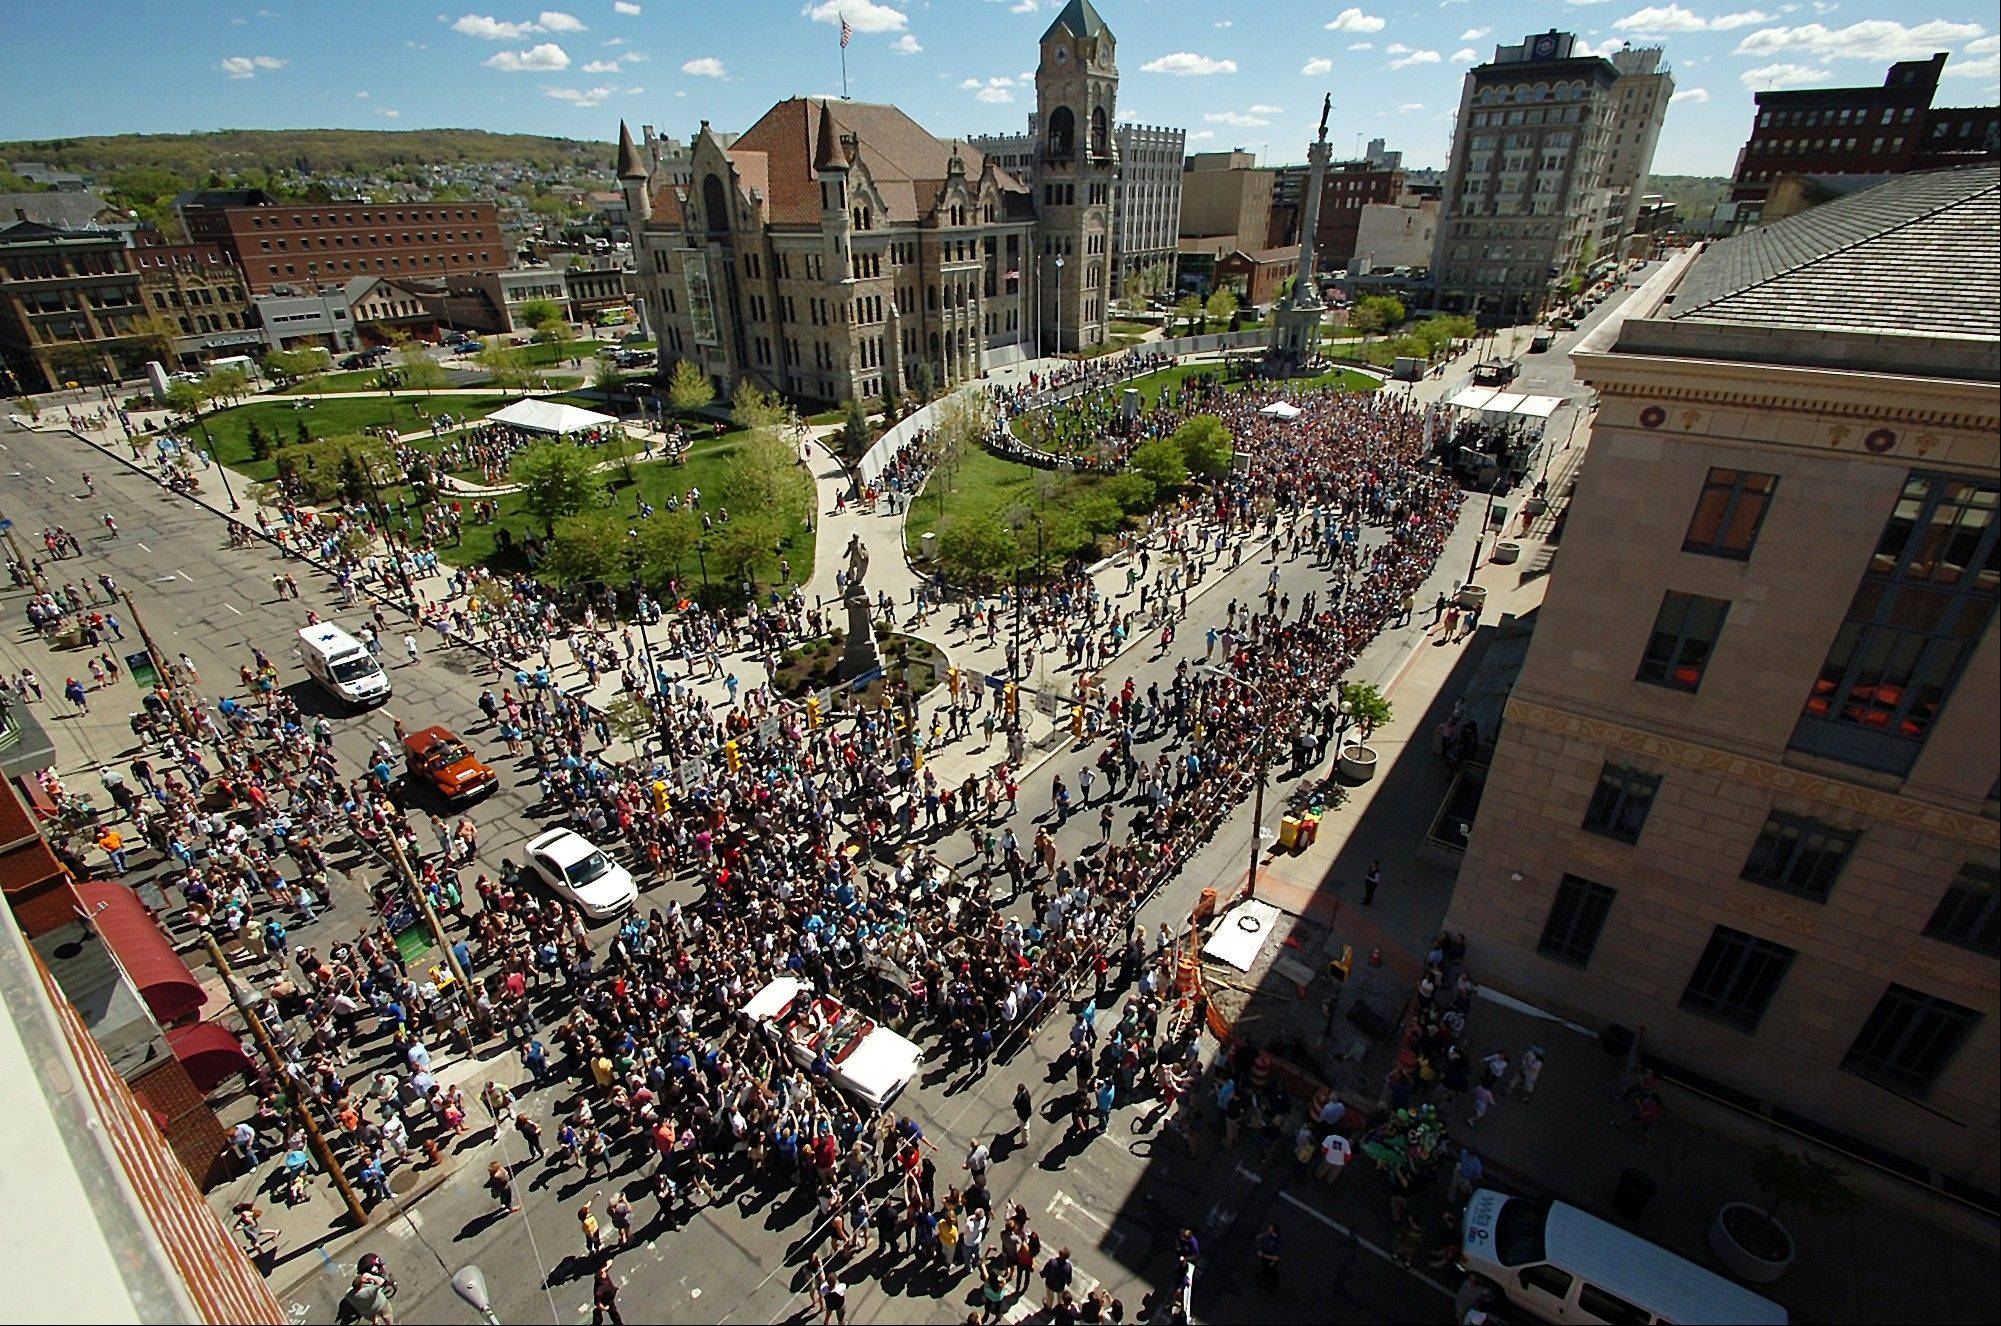 Thousands of people swarm downtown Scranton, Pa., during �The Office� Parade. The actors who play Pam, Jim, Dwight and other beloved characters from the popular NBC show �The Office� bade farewell to the northeastern Pennsylvania city of Scranton that served as the TV setting for their fictional paper company.